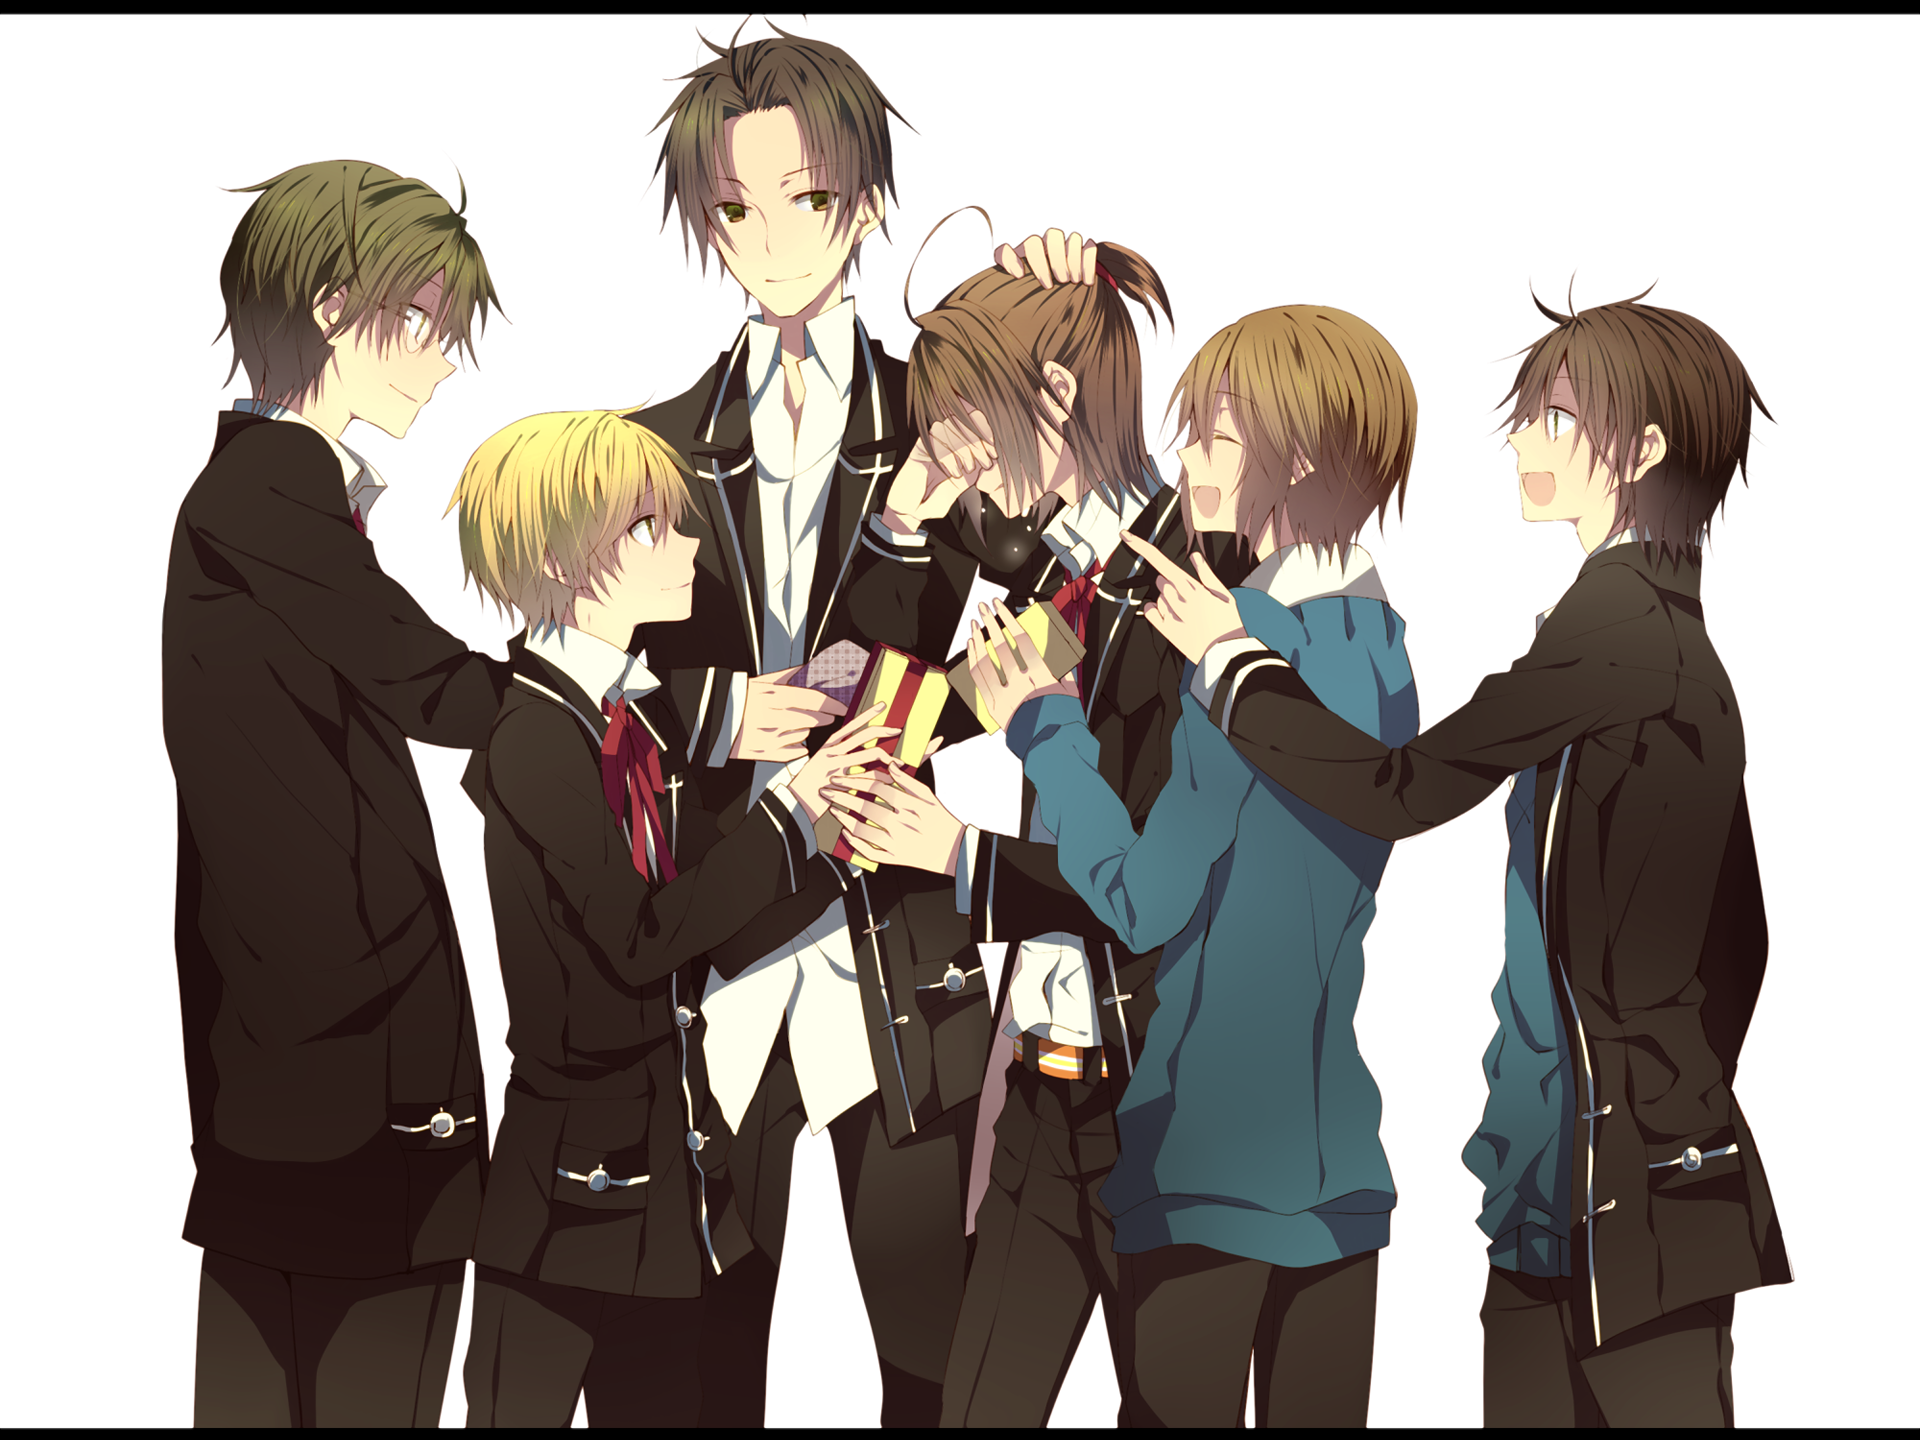 Anime Group Of Friends Boys And Girls   www.imgkid.com ...